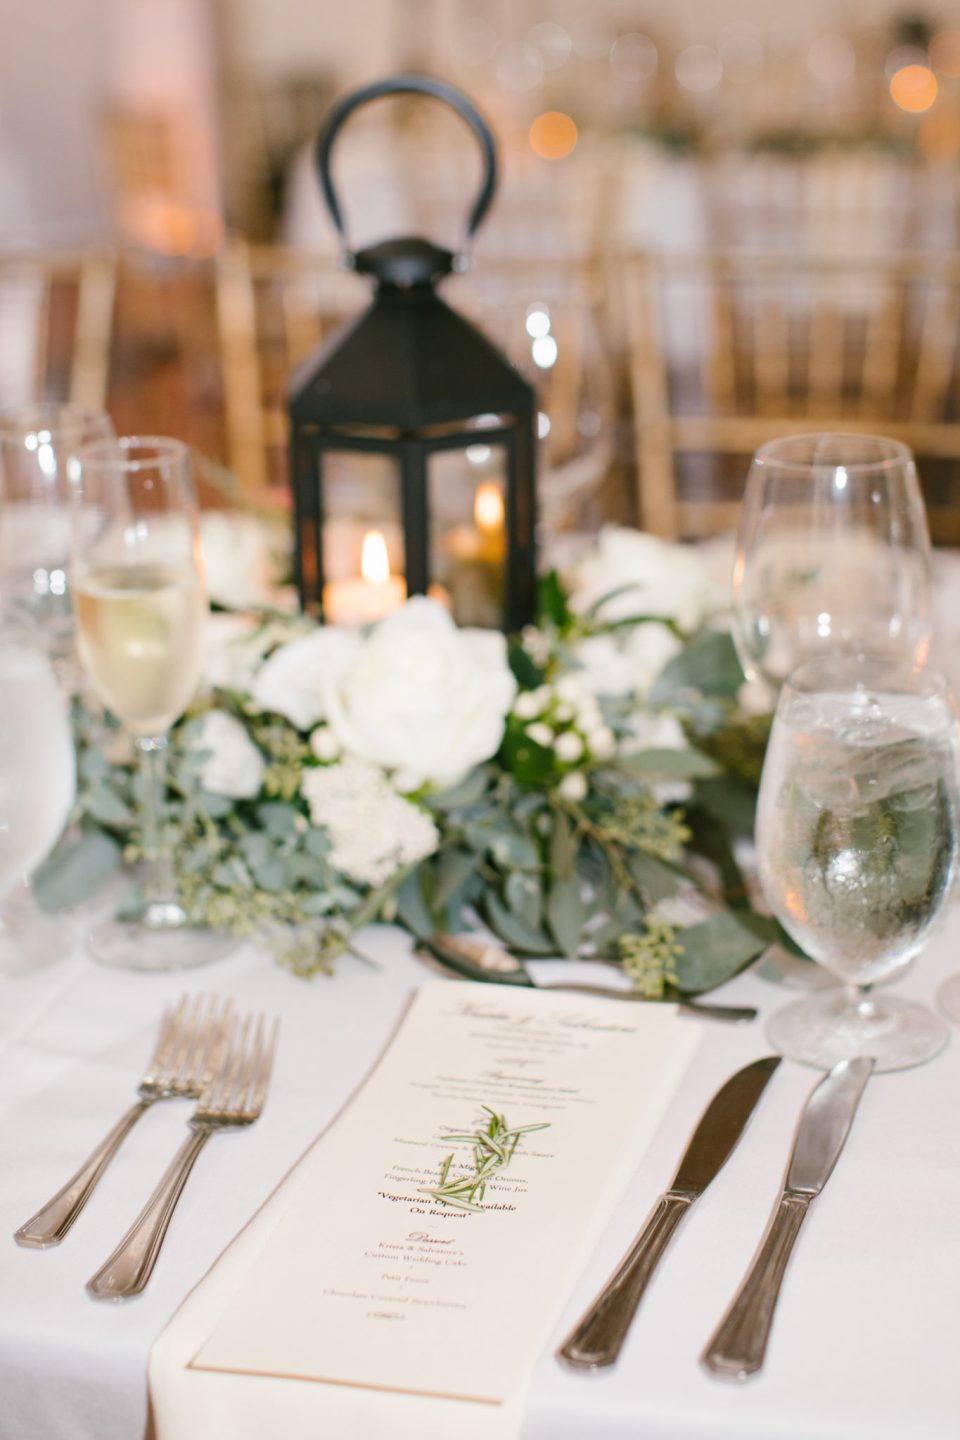 Ashley Mac Photographs photographs wedding table details at Ryland Inn